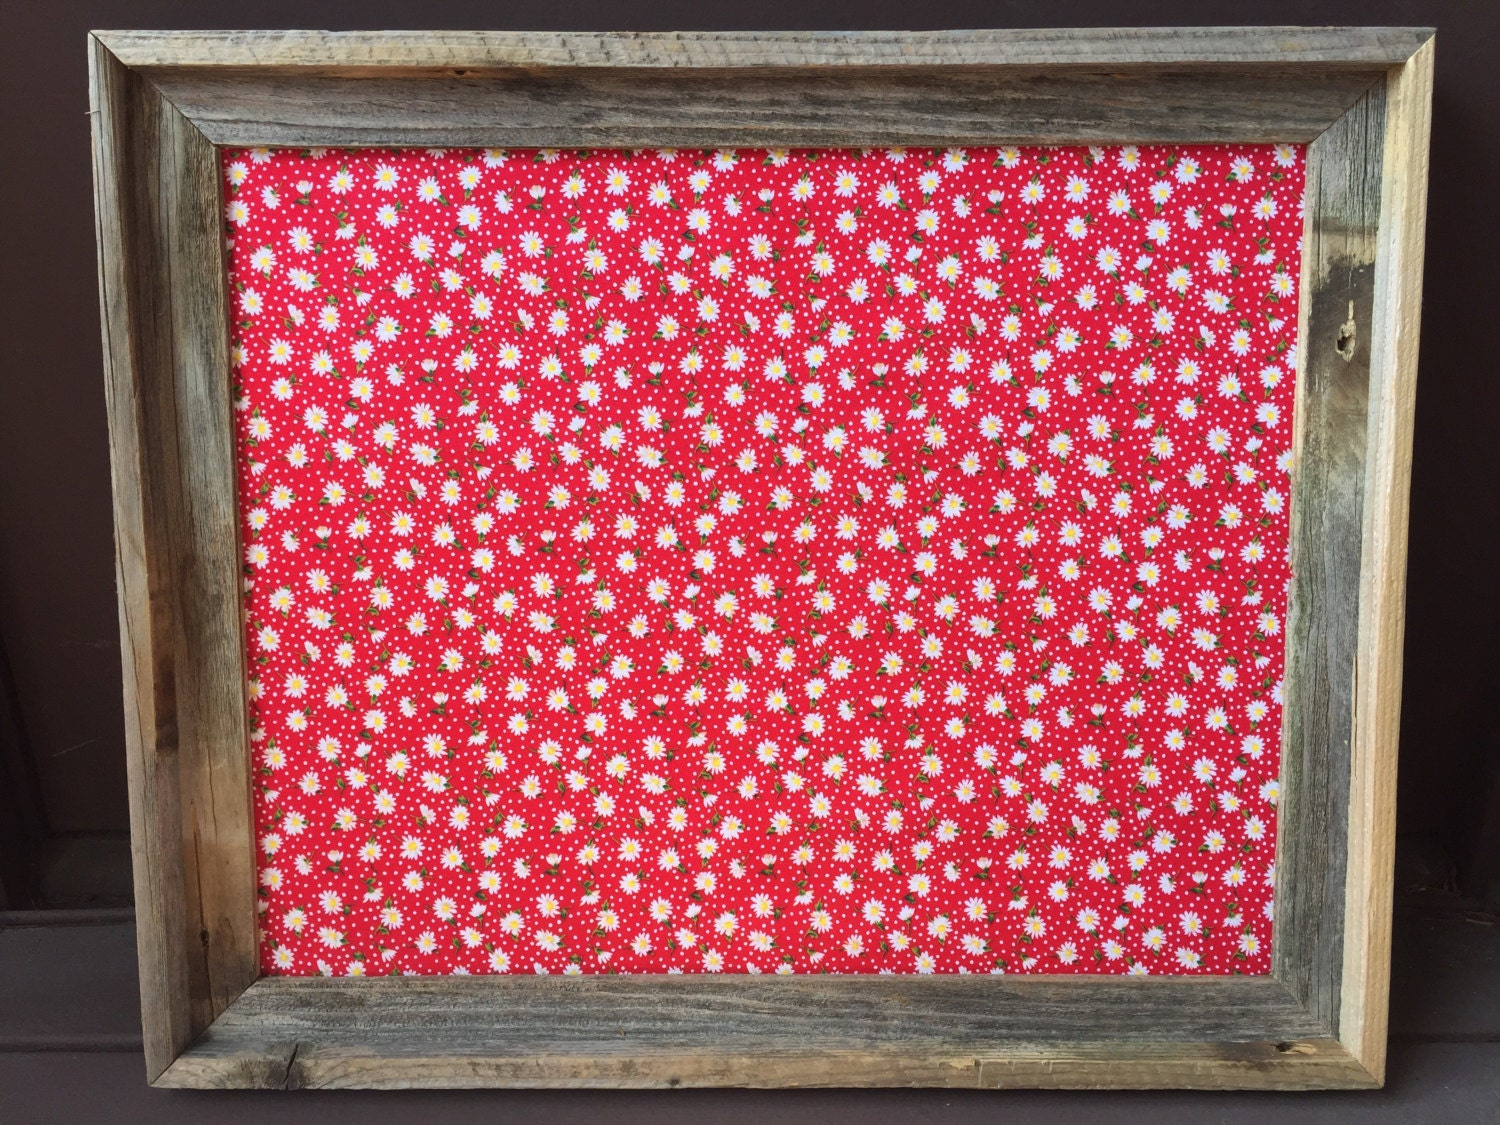 Decorative Bulletin Board Fabric Cork Board Organizer. Natural Gas Room Heaters. Dorm Wall Decorations. Chair For Baby Room. 2 Room Suites Las Vegas. Horse Party Decorations. Living Room Armoire. Indoor Decorative Plants. Small Space Living Room